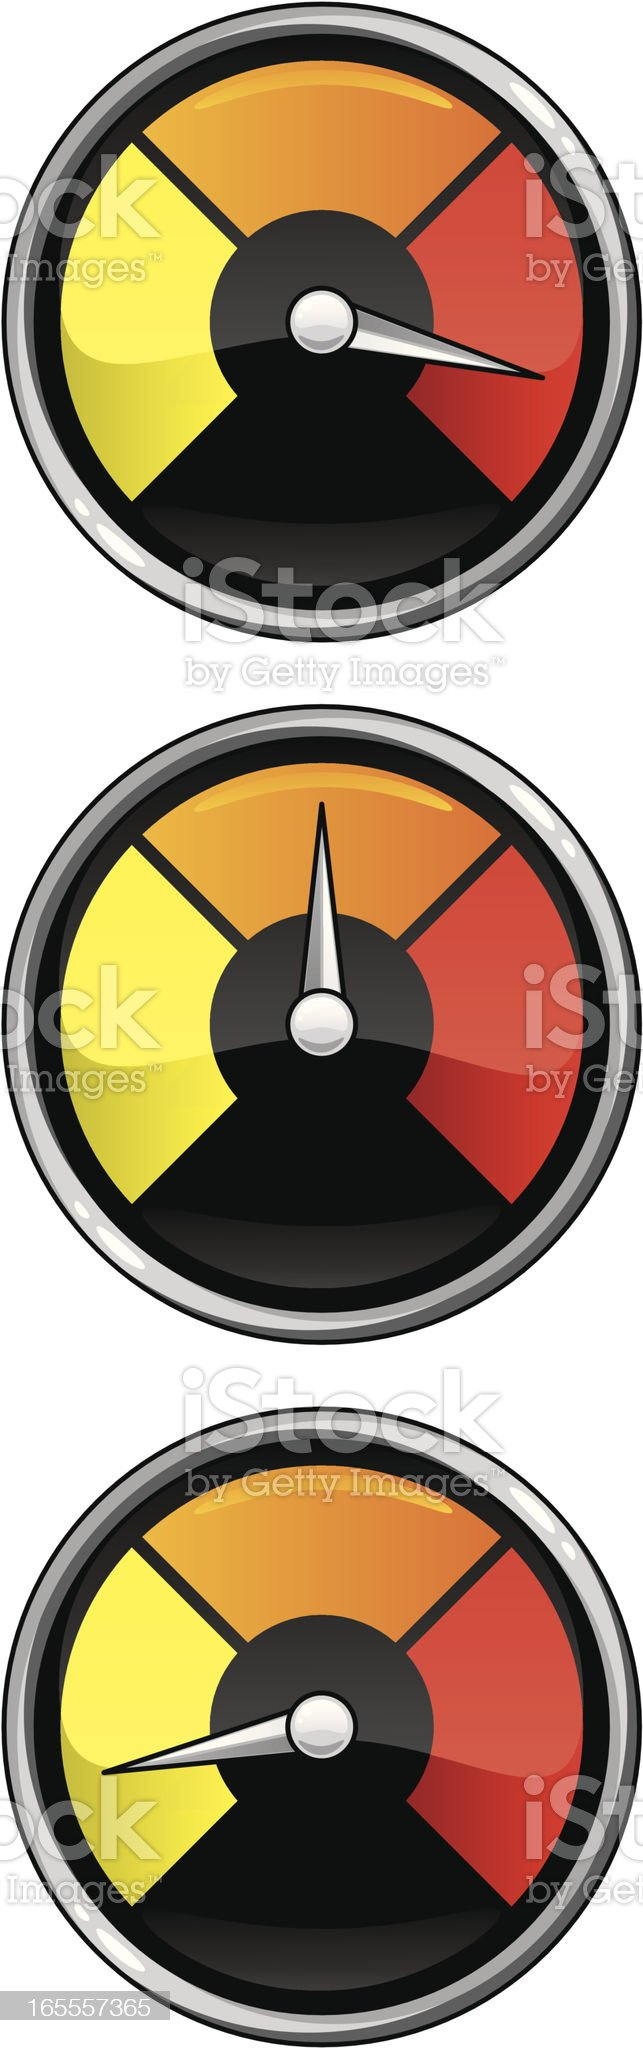 red dials royalty-free stock vector art